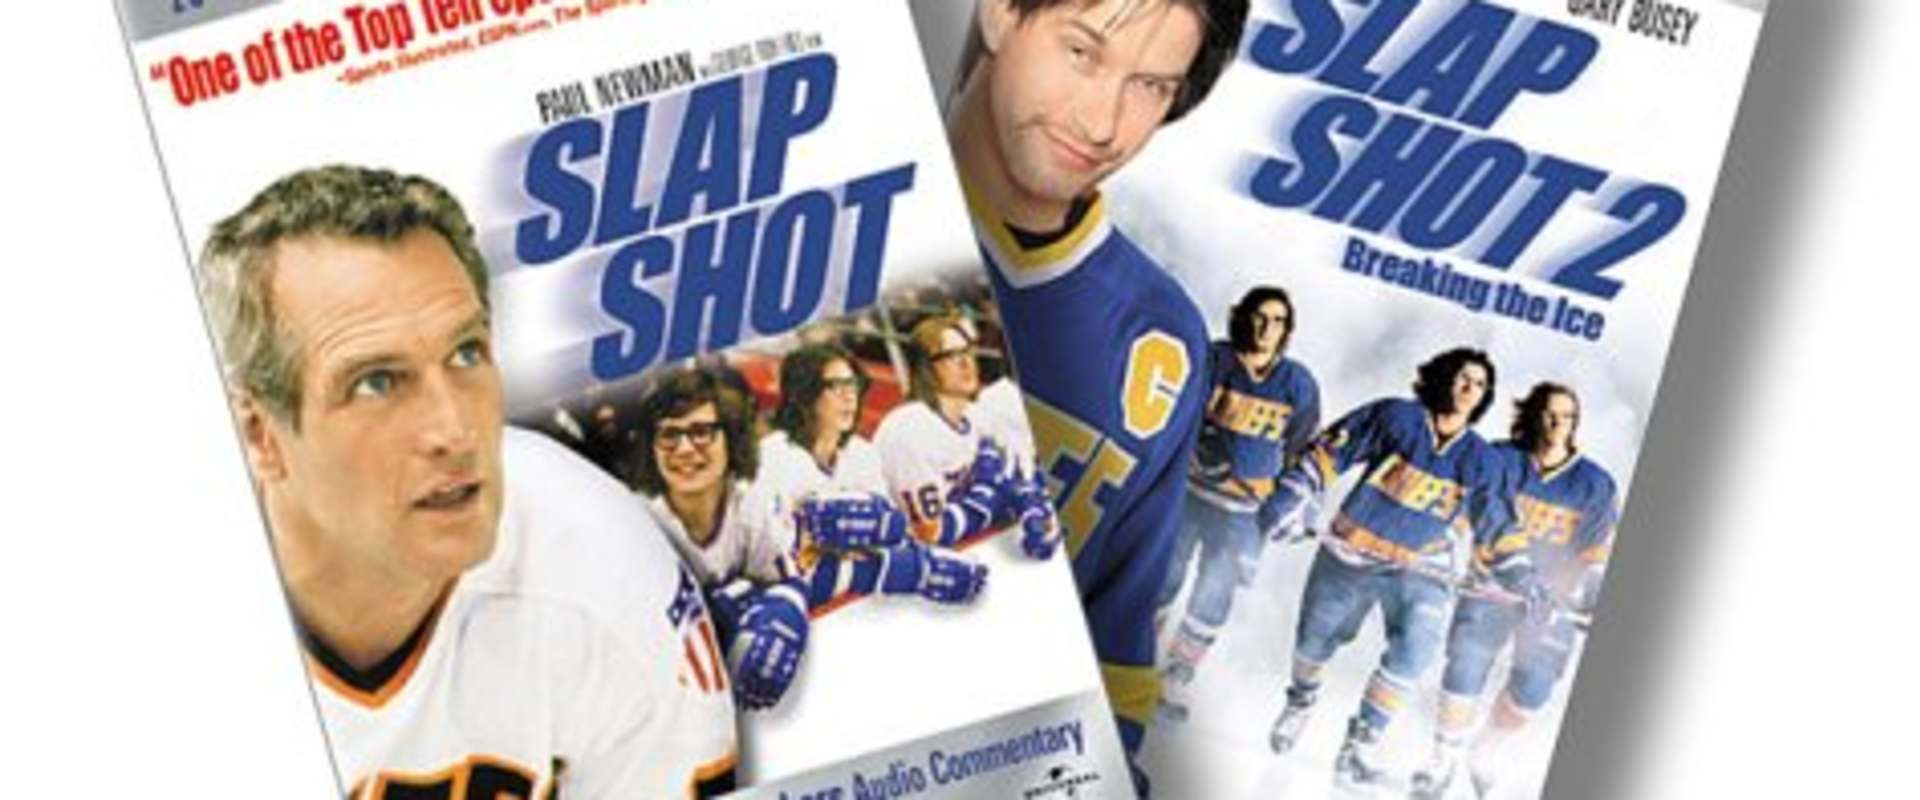 Slap Shot 2: Breaking the Ice background 1